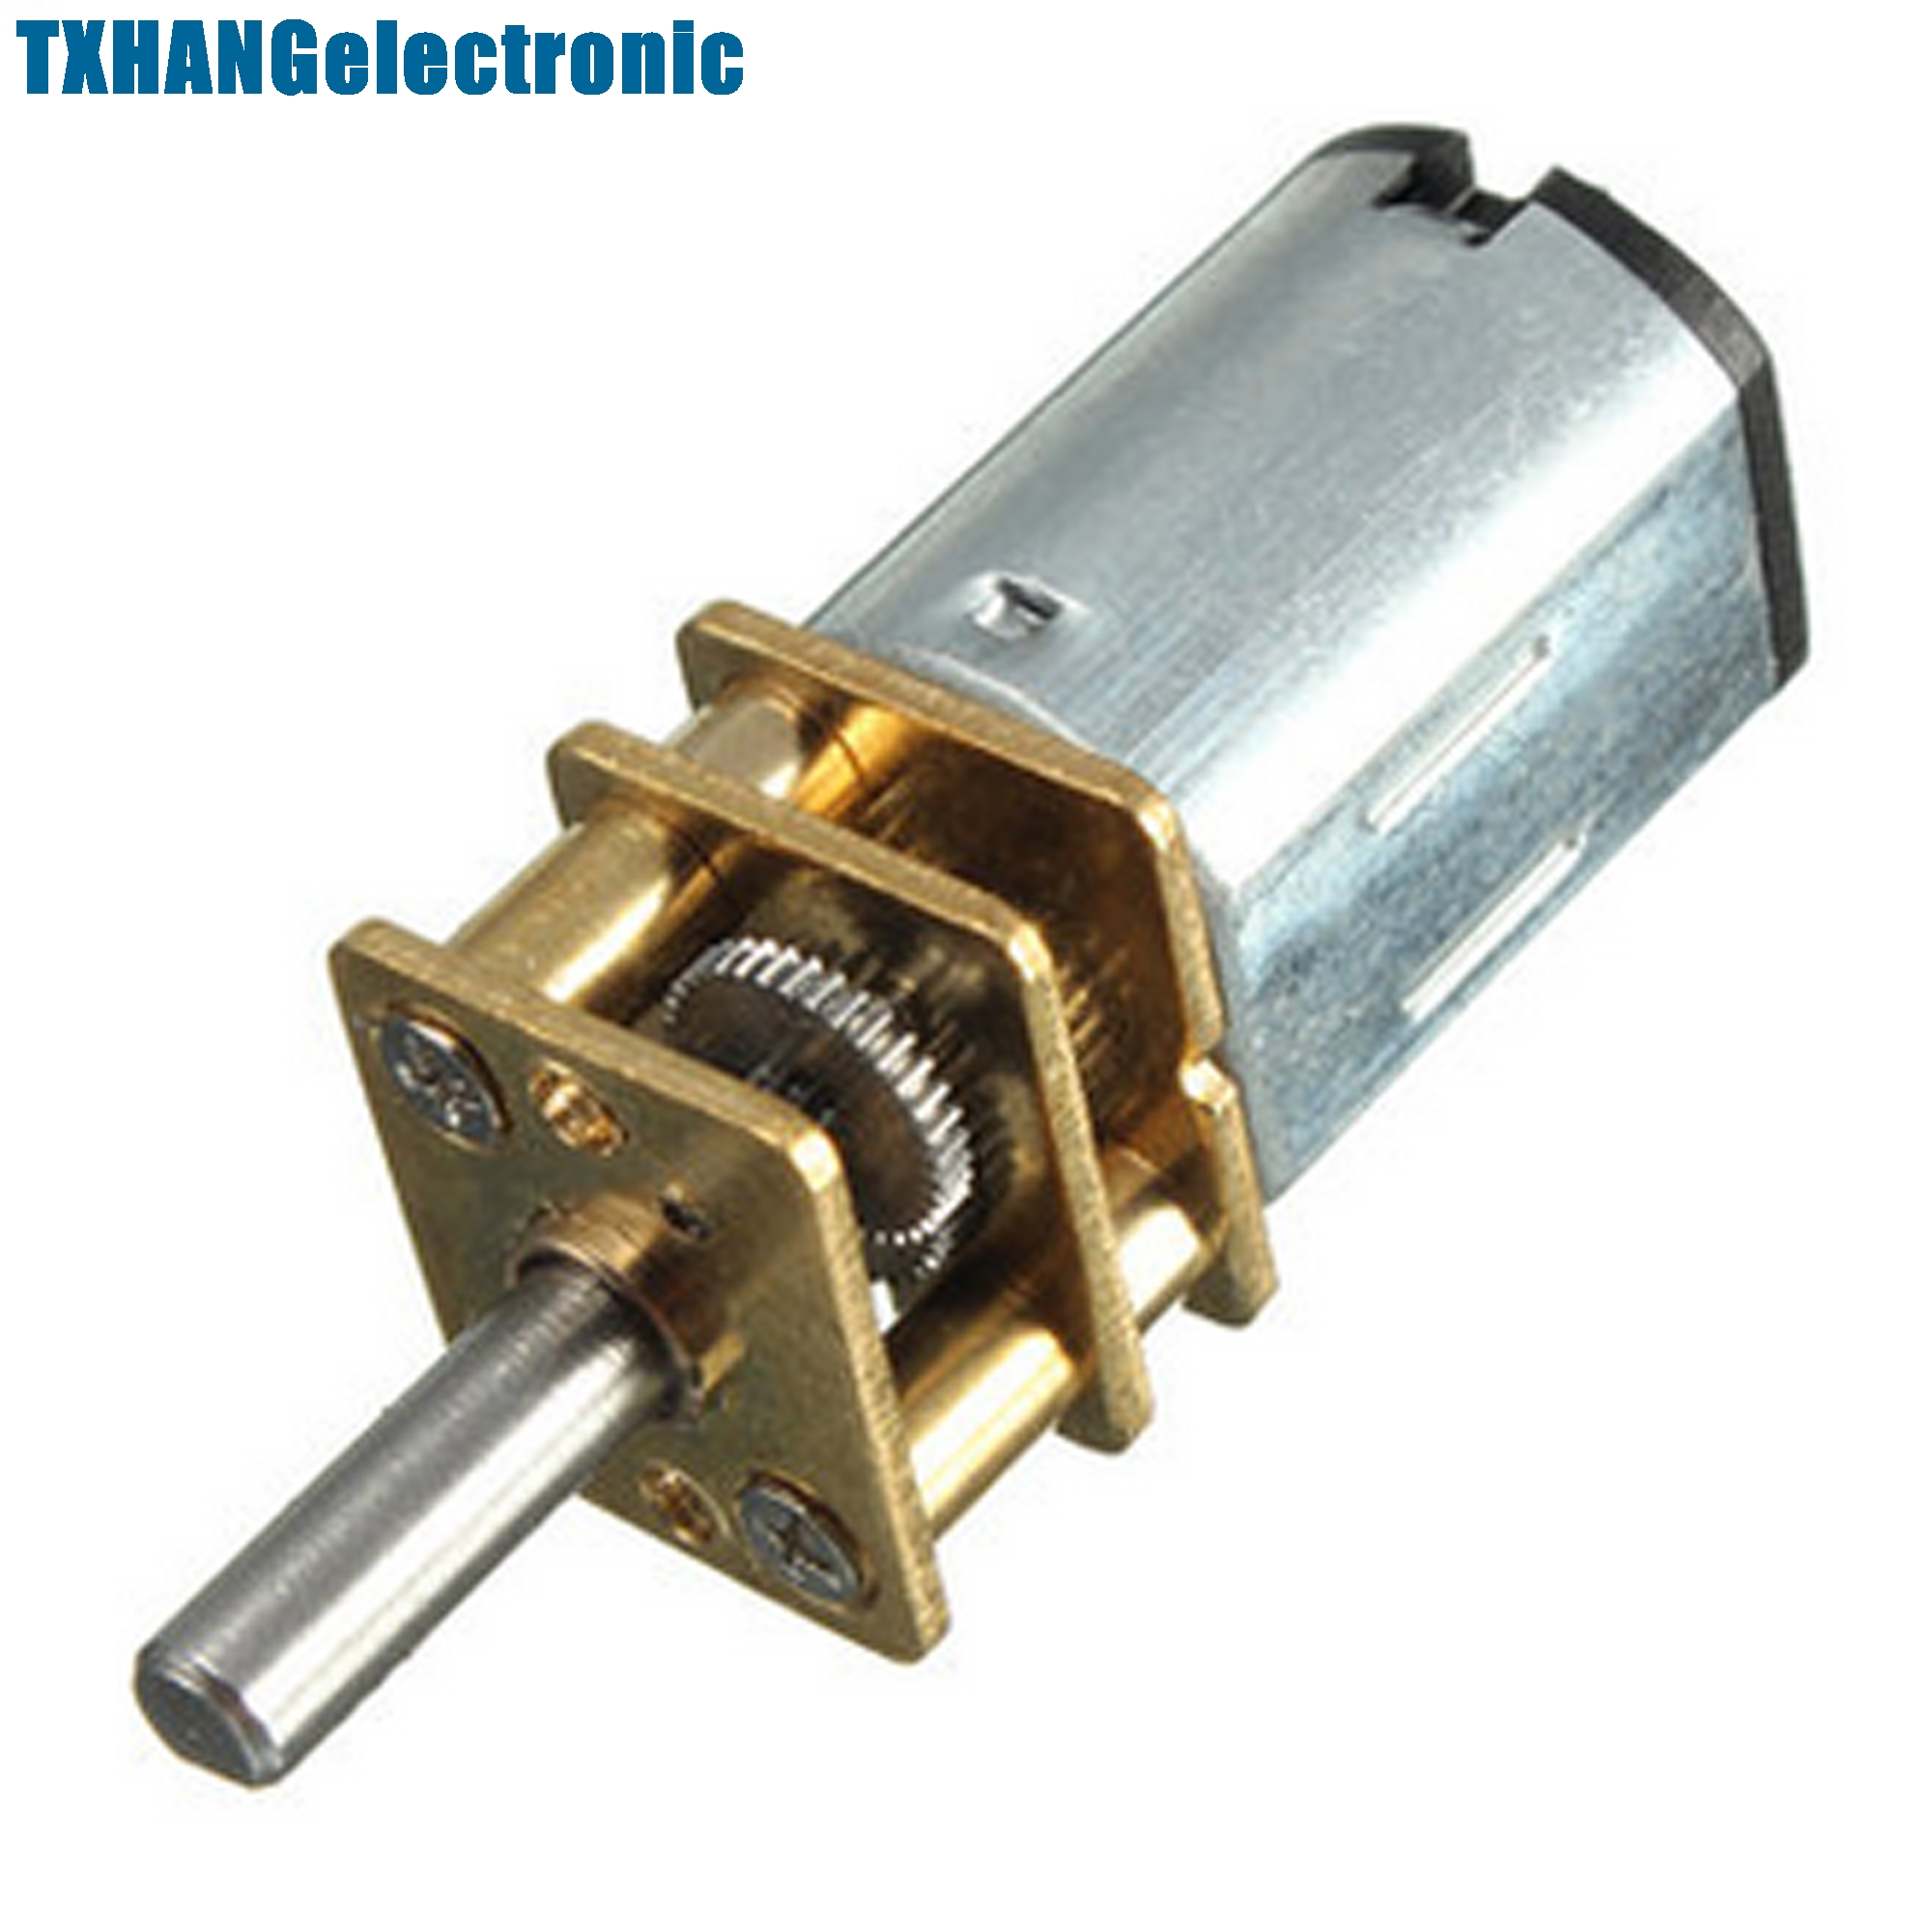 Micro Speed Reduction Gear Motor with Metal Gearbox <font><b>Wheel</b></font> DC 6V 30RPM <font><b>N20</b></font> image